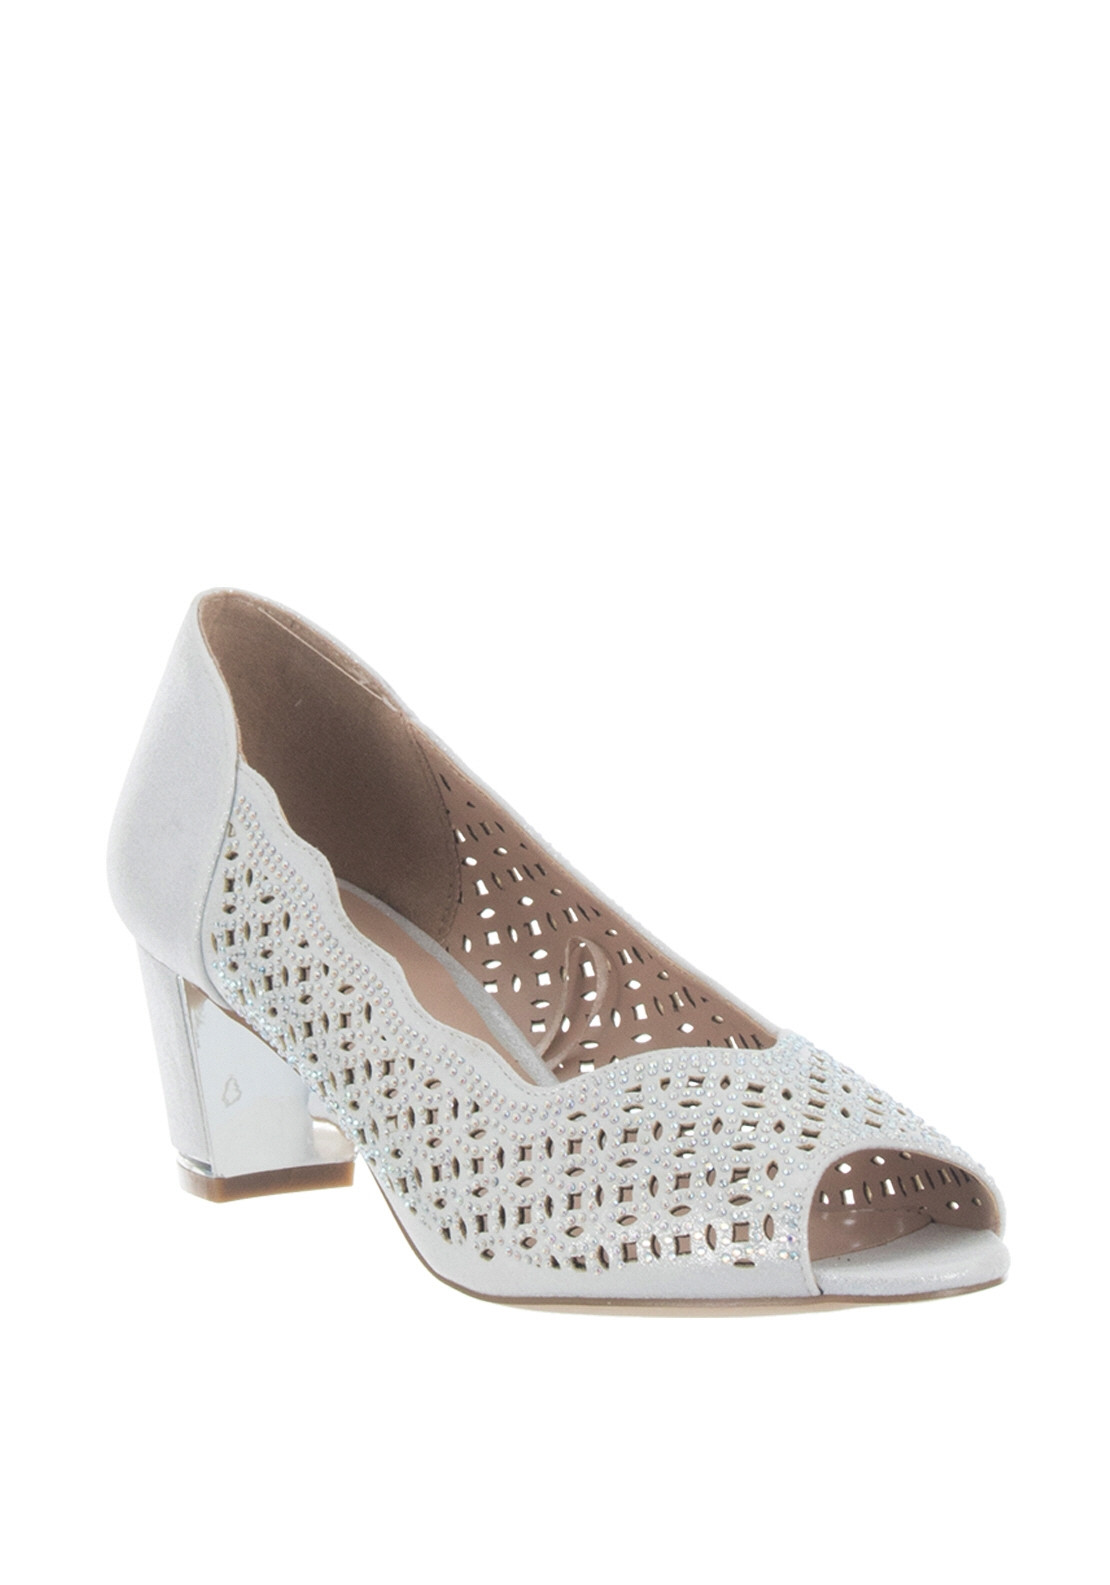 5ab4c5e8e239 Lotus Attica Embellished Peep Toe Shoes, Silver. Be the first to review  this product